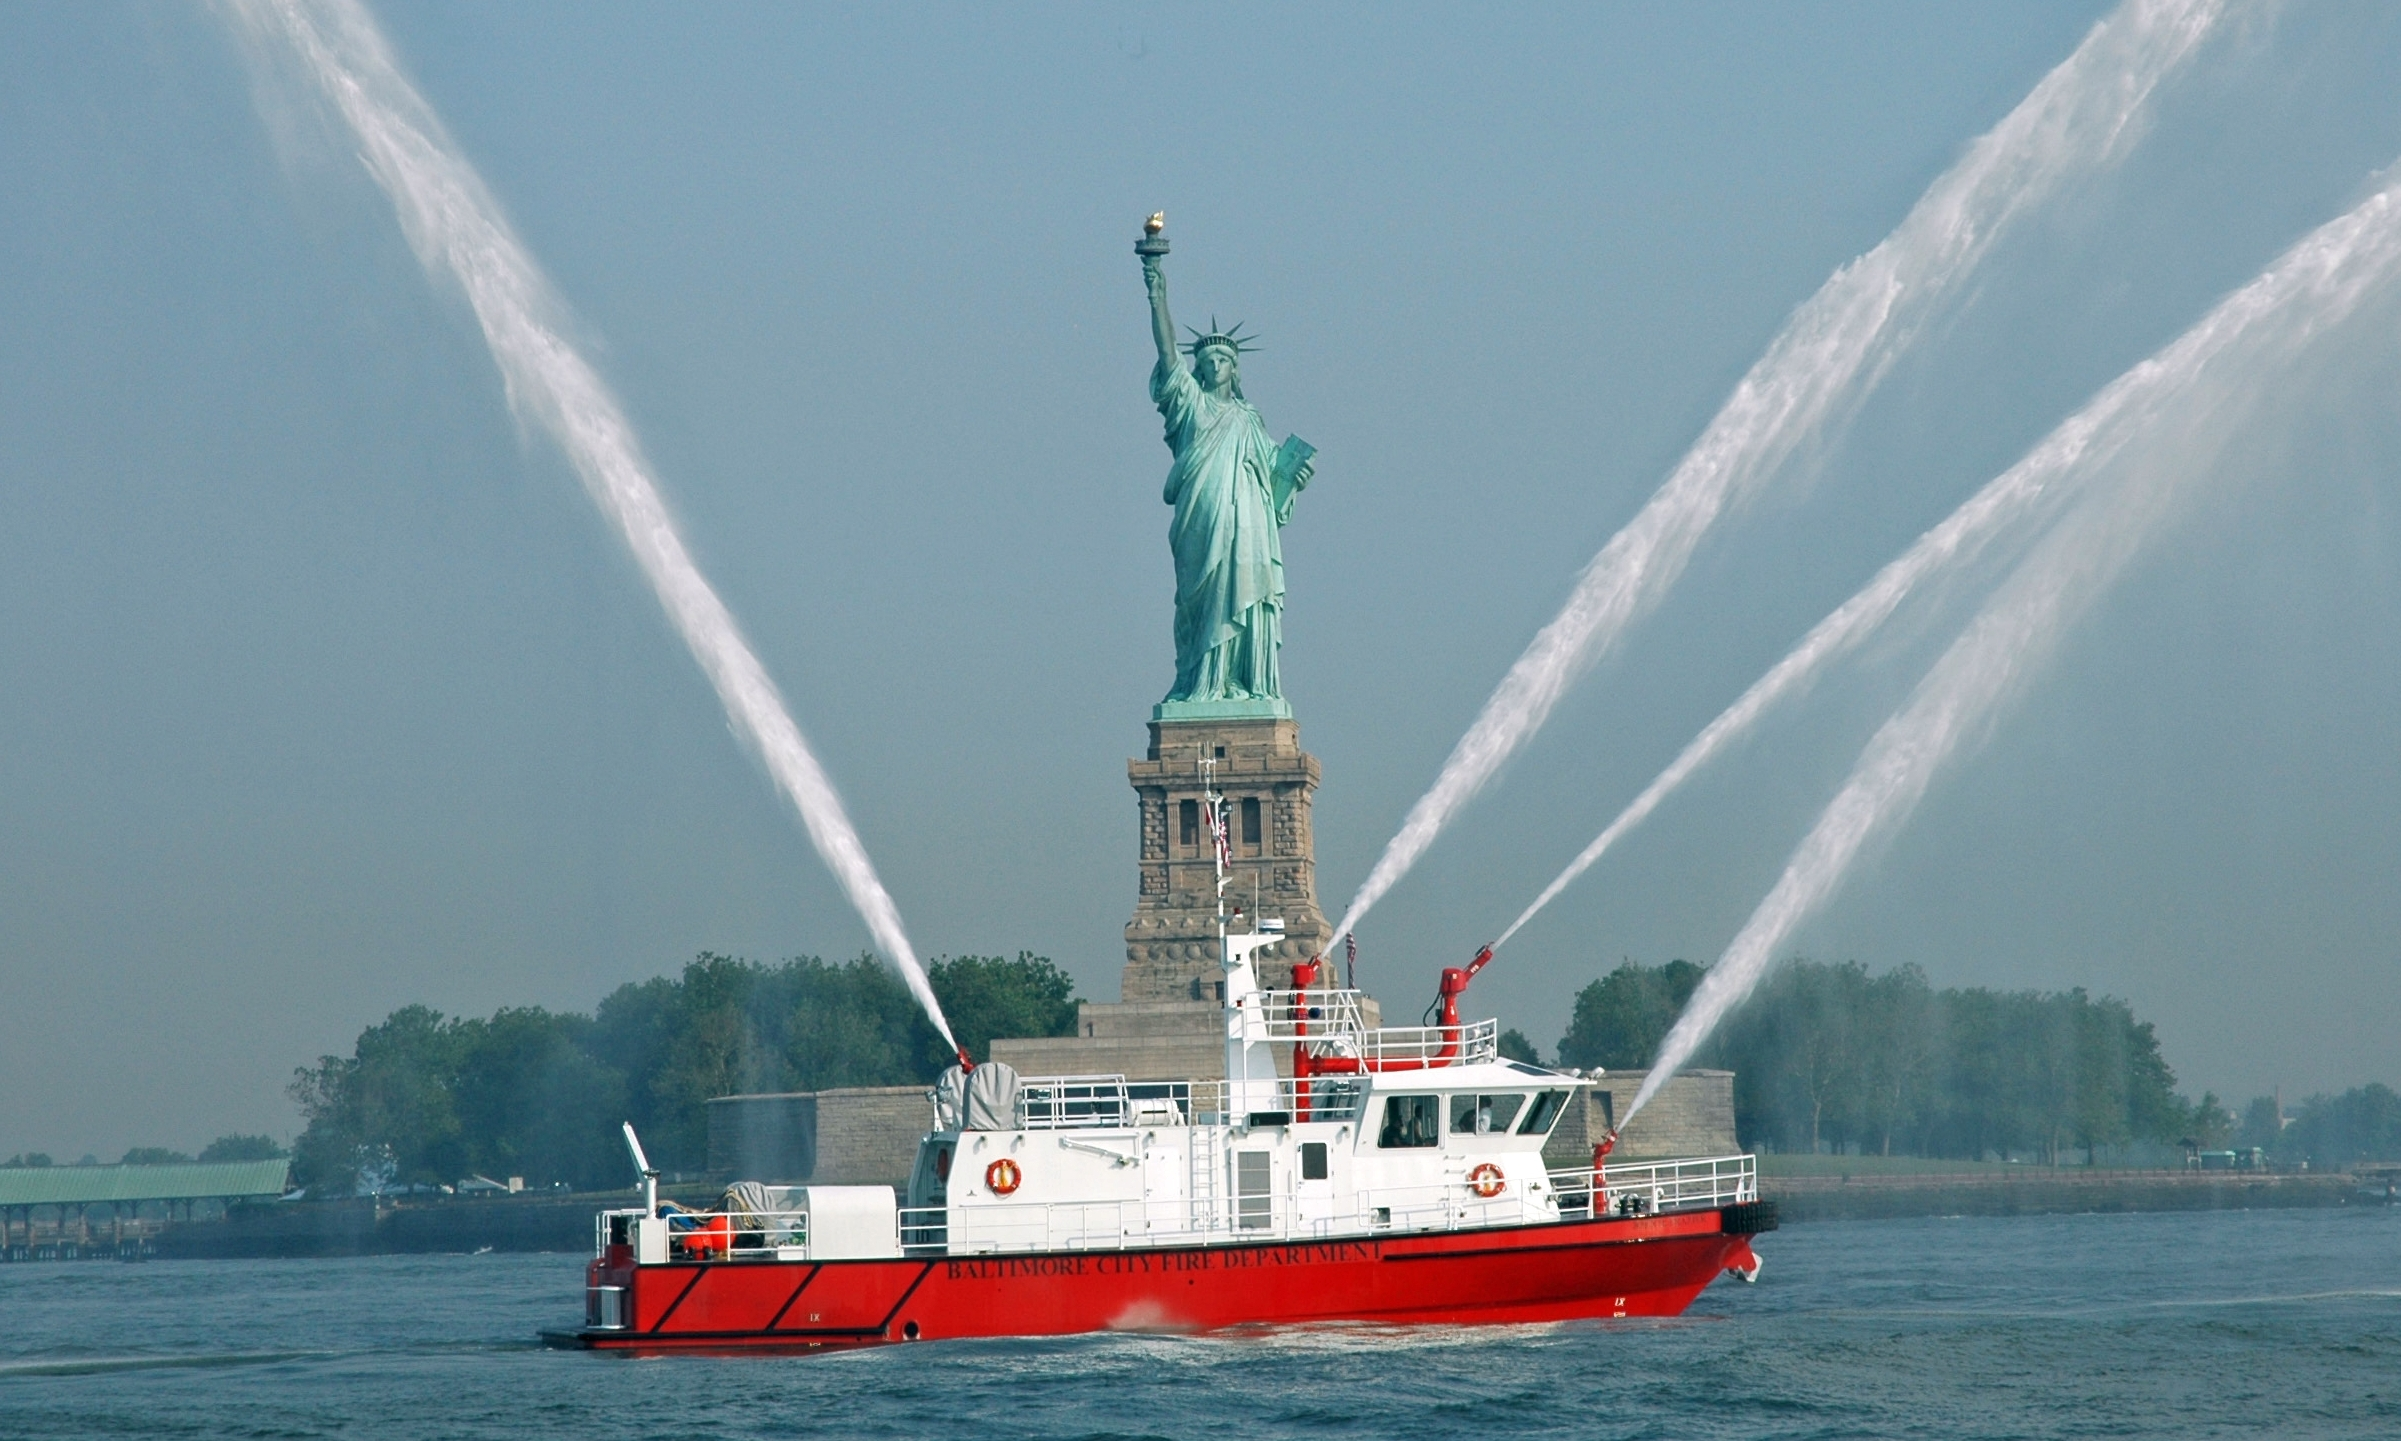 Heavy Duty Custom Commercial Manufacturer of Fire-Boats For Serious ...